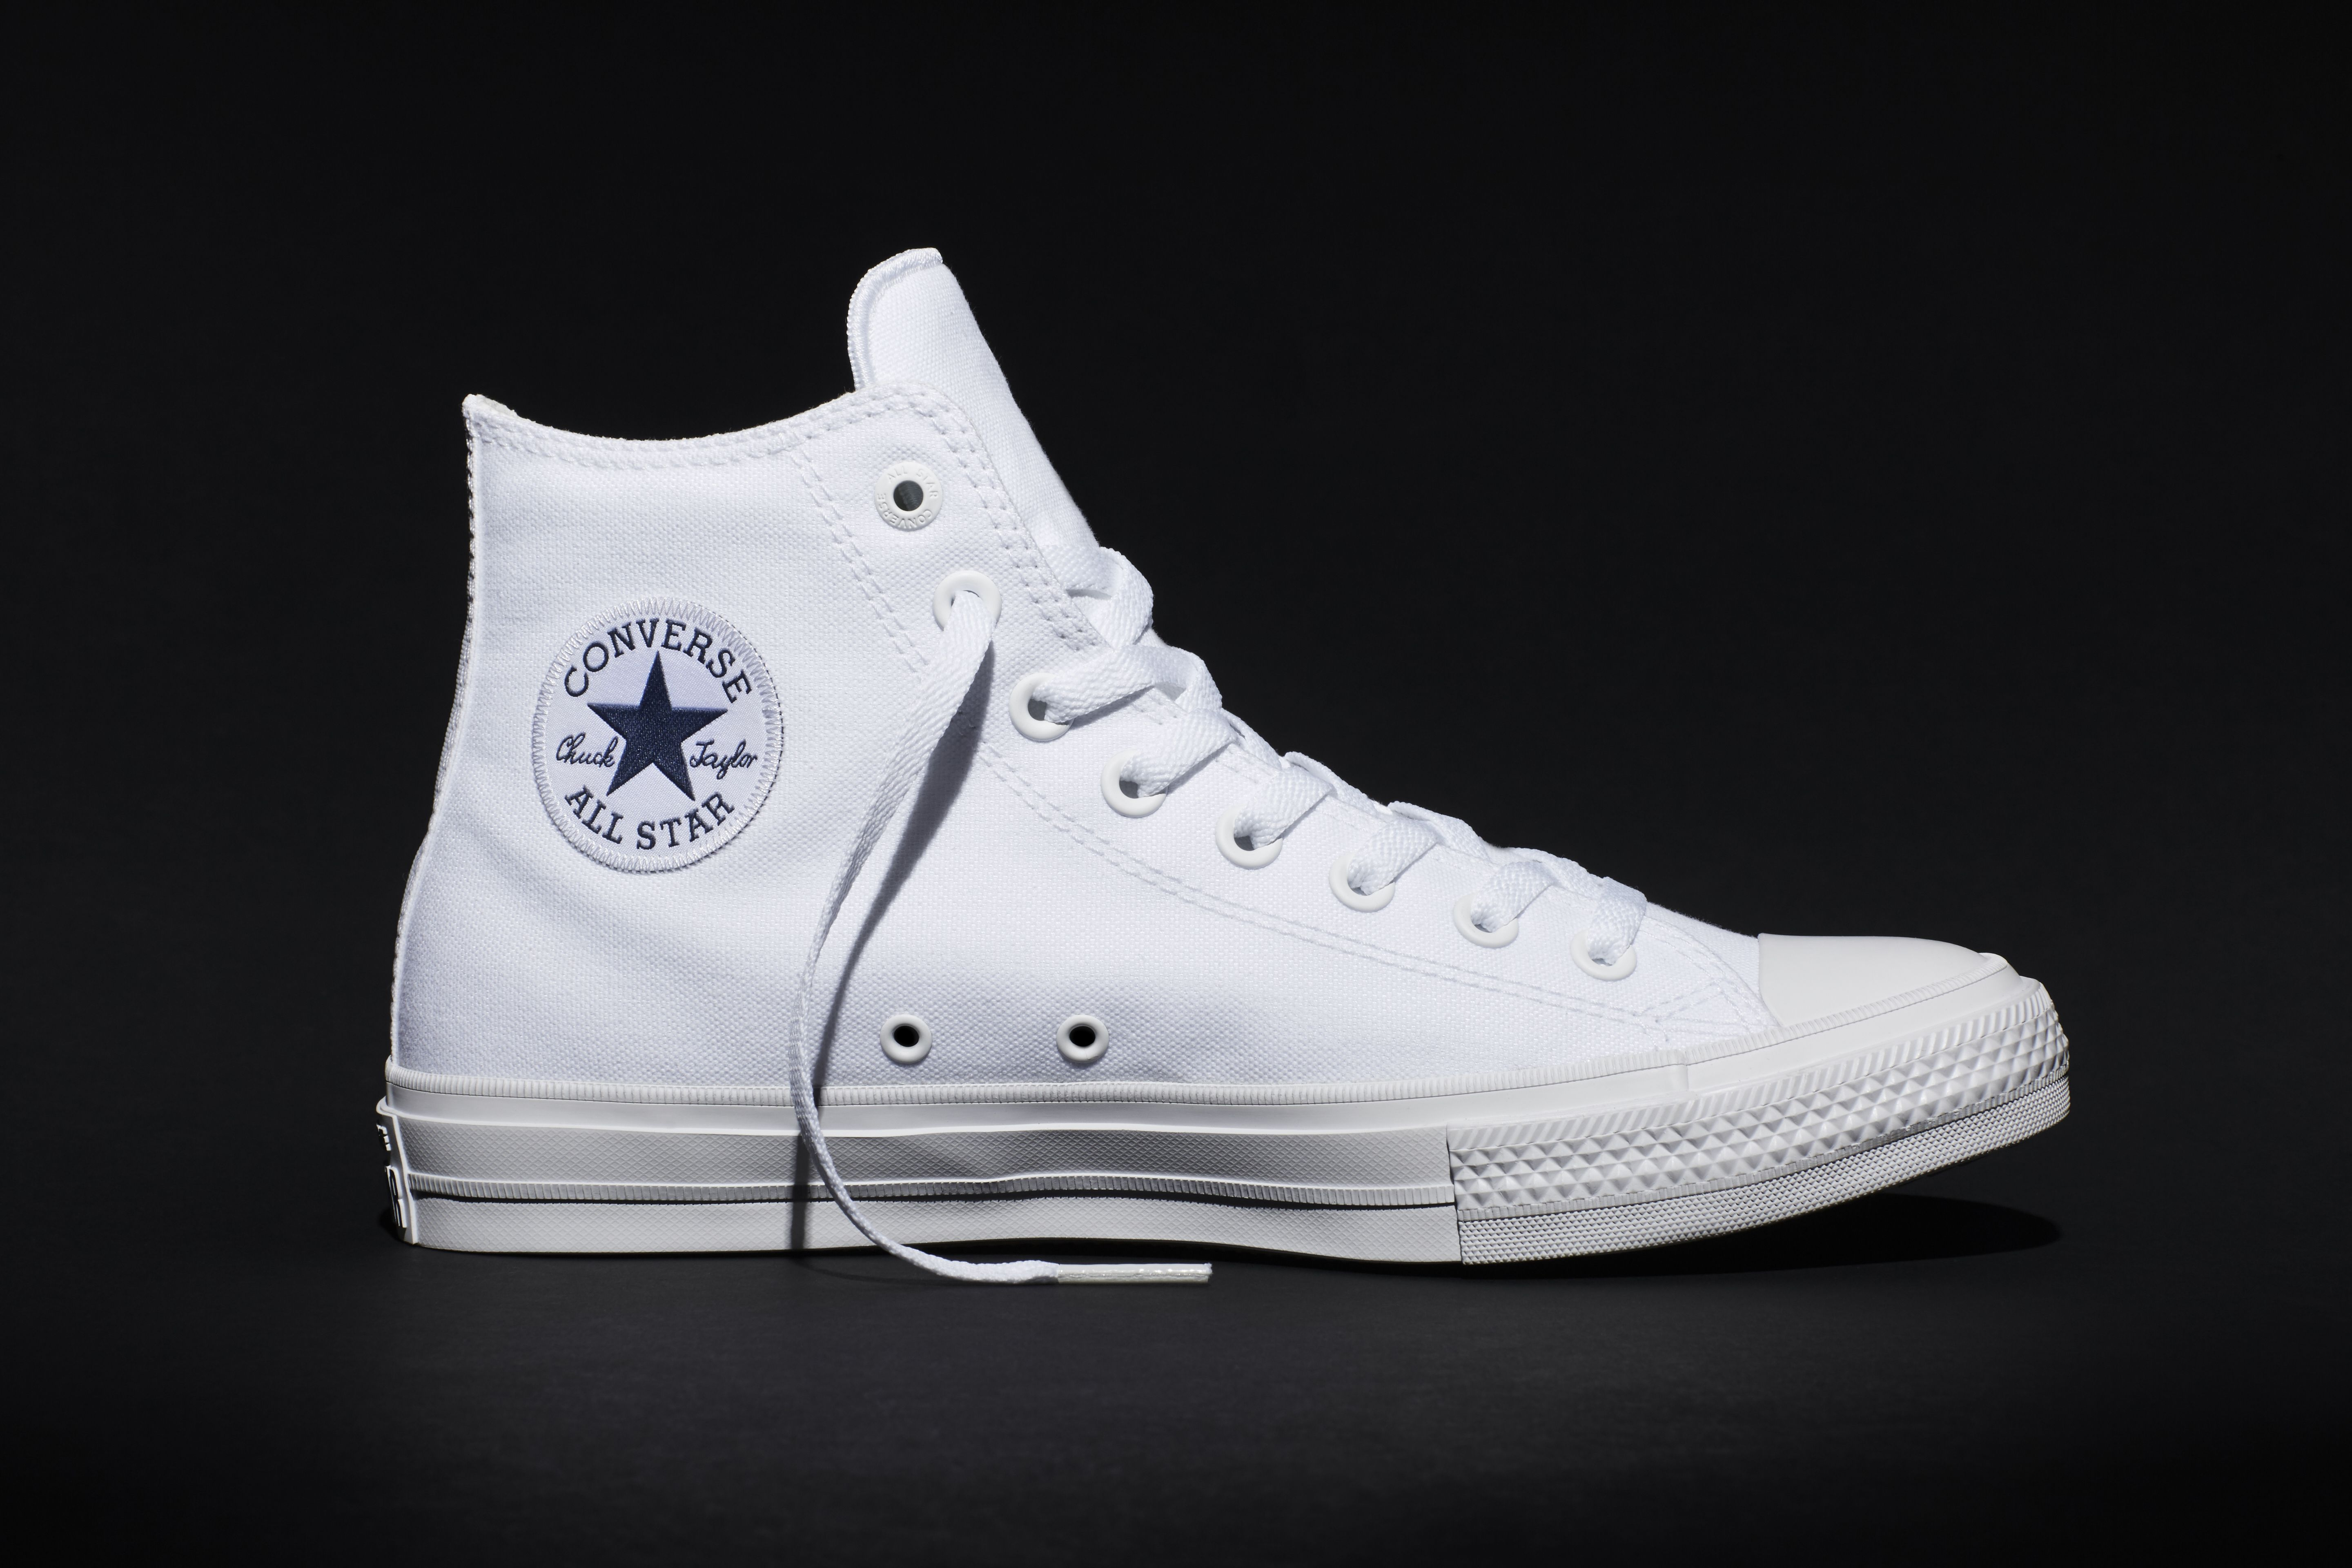 4028d9b024c5 When Will Chuck IIs Be Back in Stock  - Converse Chuck II Restock